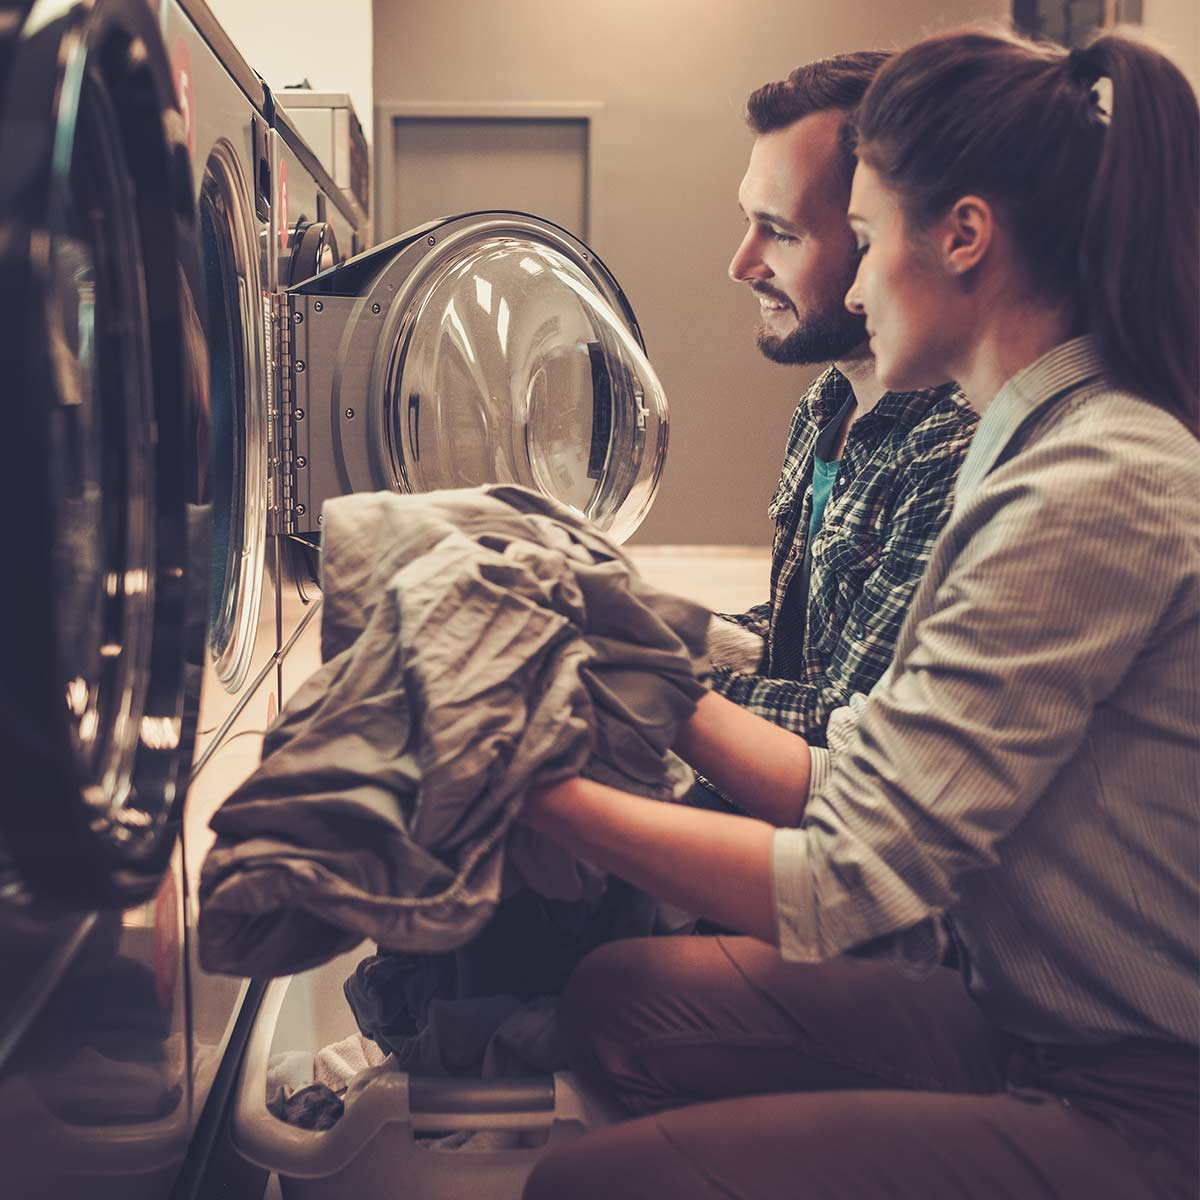 man and woman sitting in front of dryers and folding laundry together